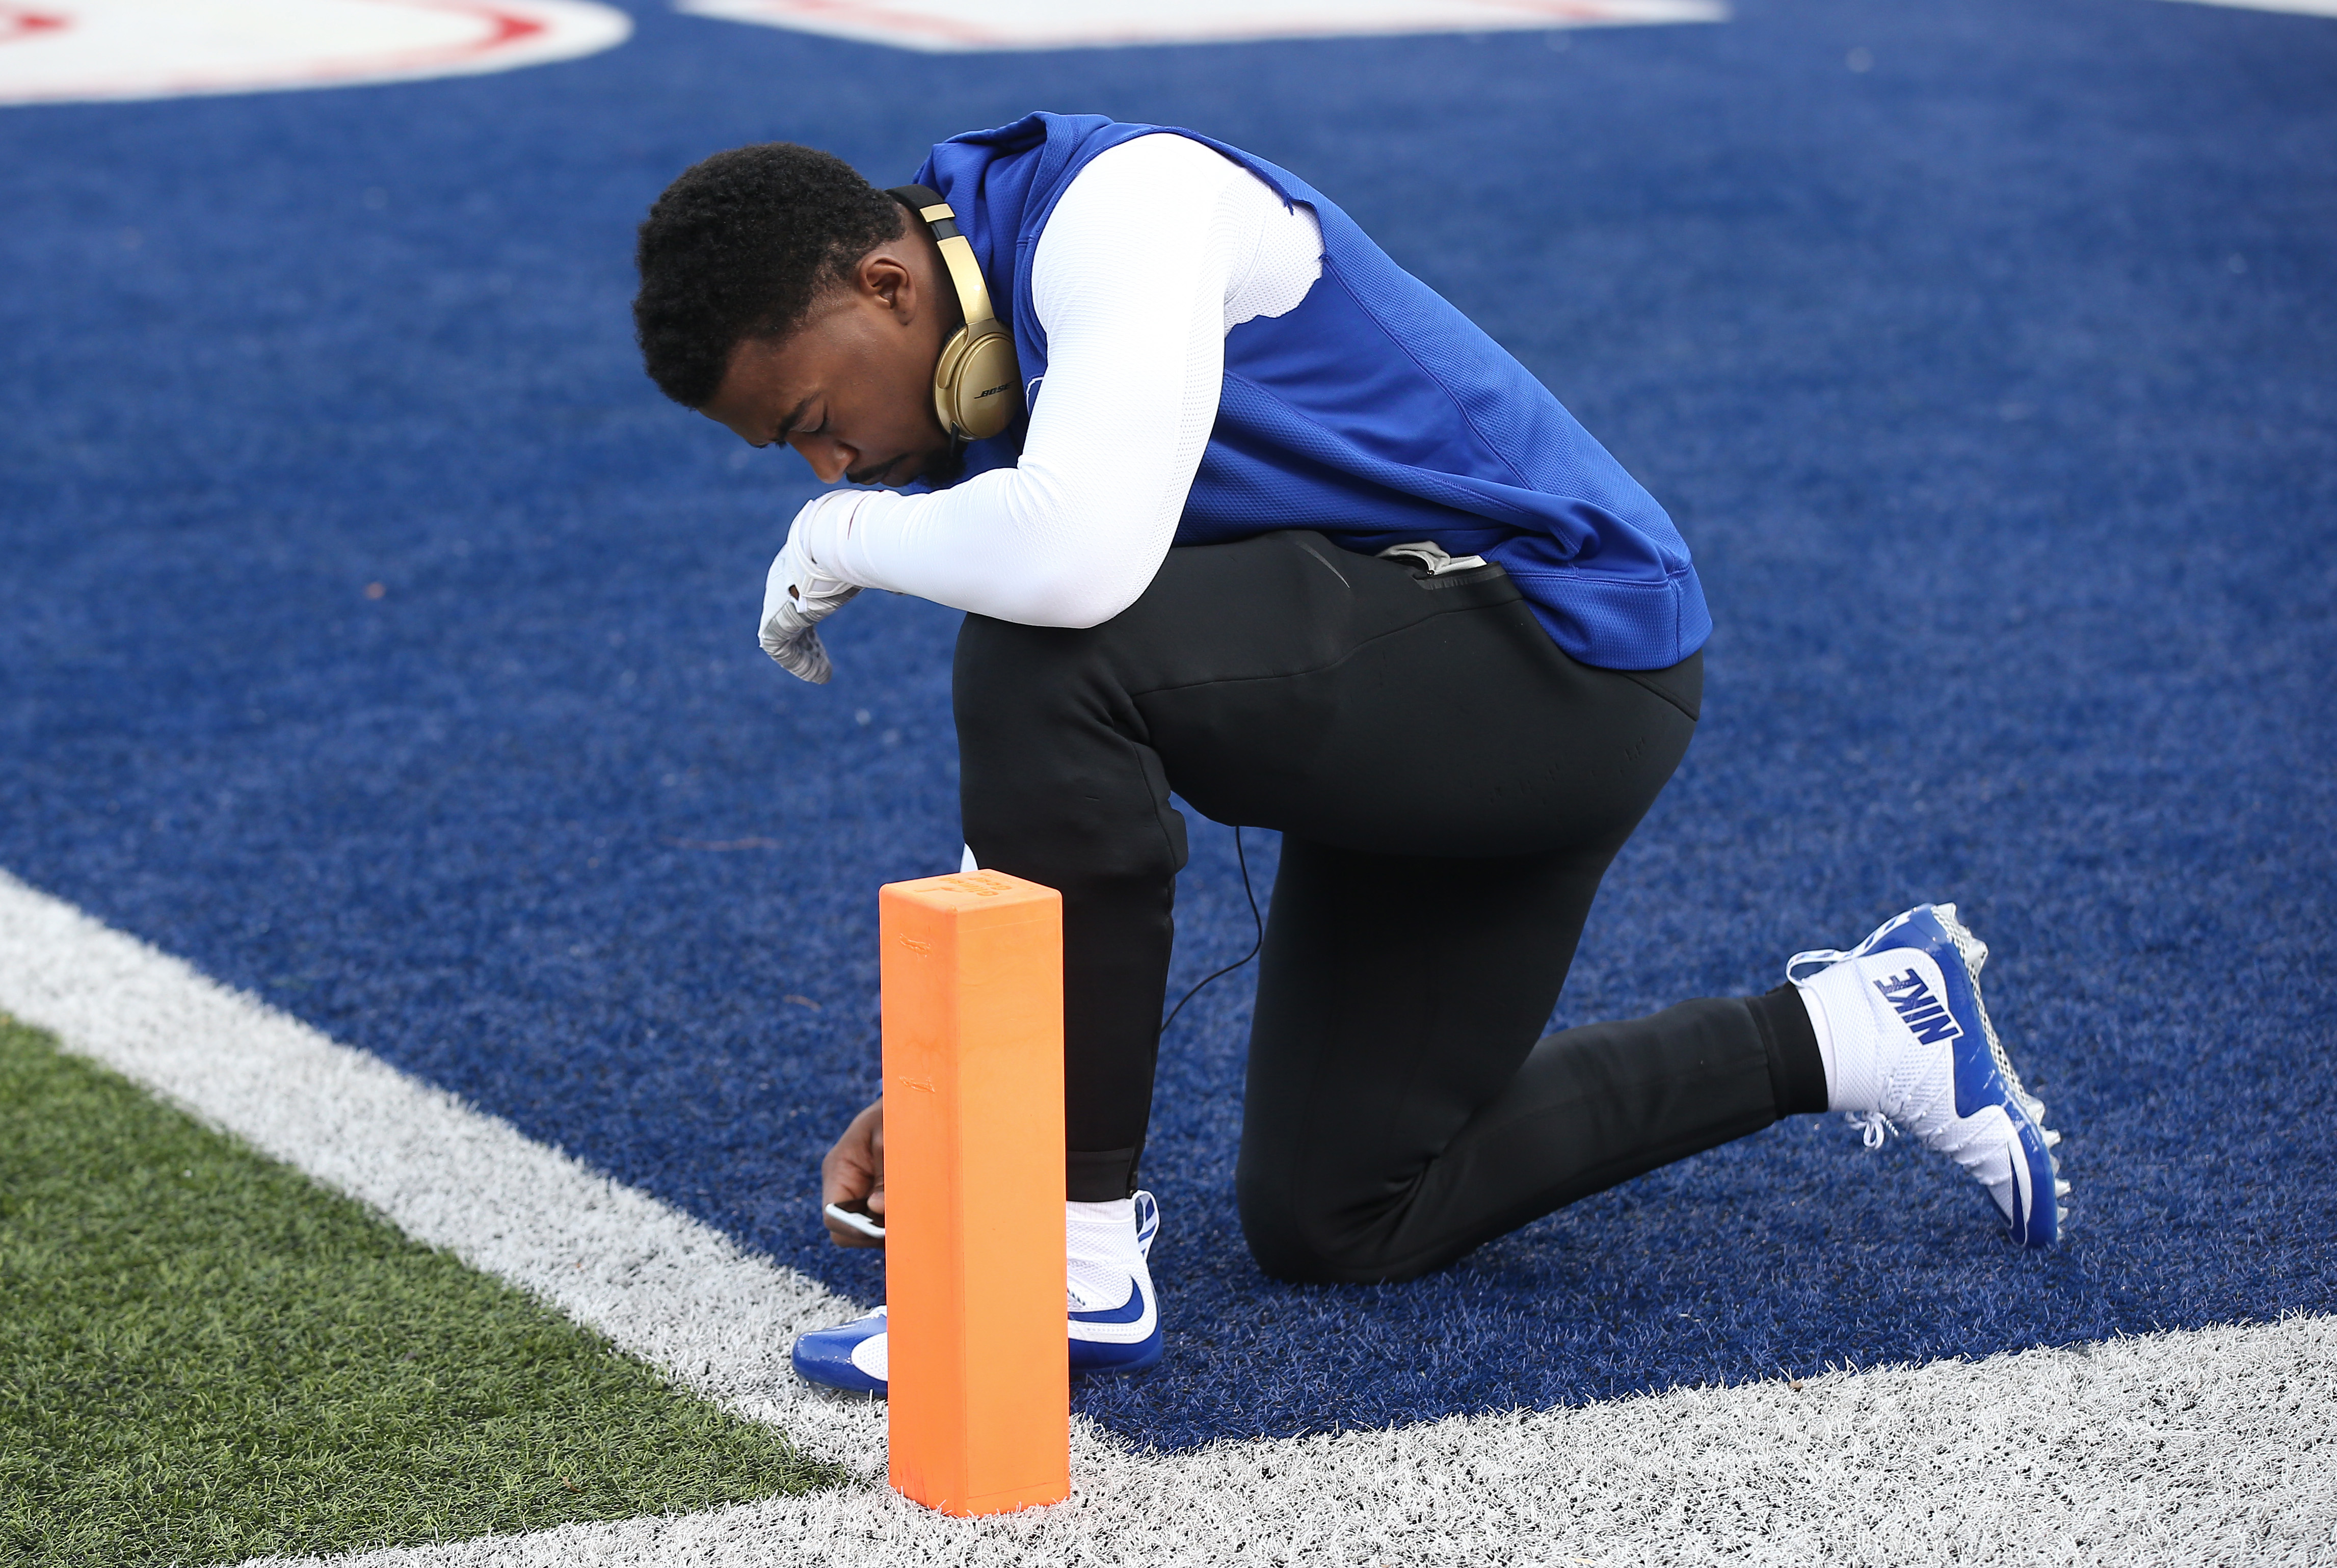 Tyrod Taylor #5 of the Buffalo Bills says a prayer prior to warming up before playing against the Houston Texans during NFL game action at Ralph Wilson Stadium on December 6, 2015 in Orchard Park, New York.